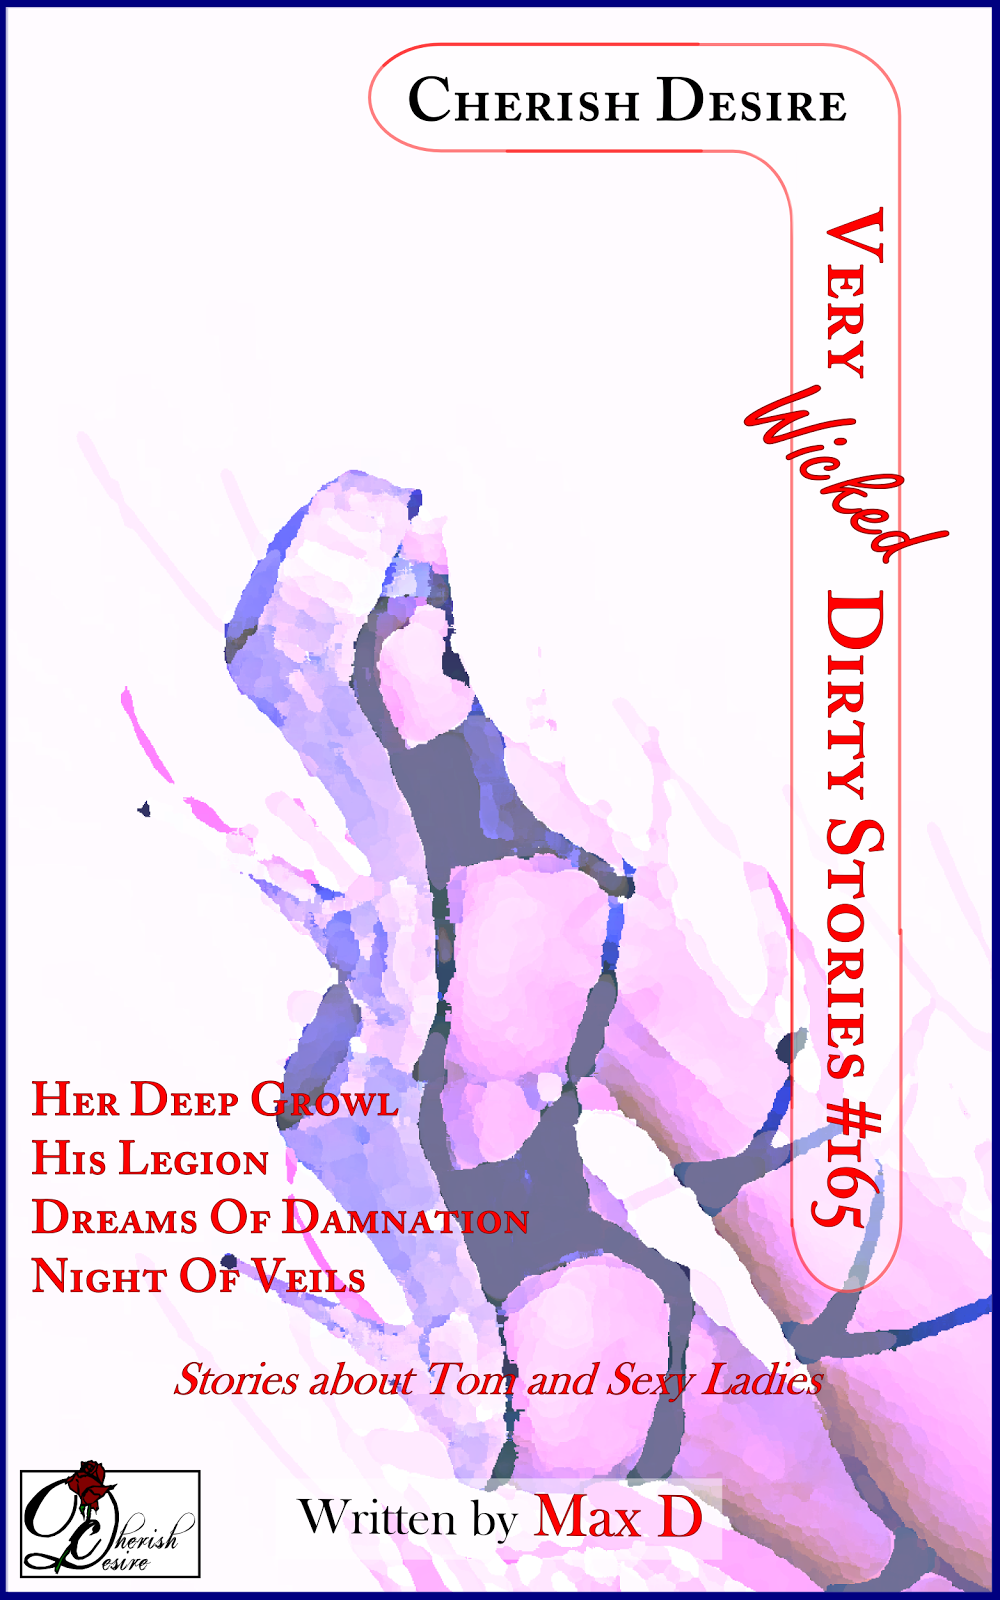 Cherish Desire: Very Wicked Dirty Stories #165, Max D, erotica